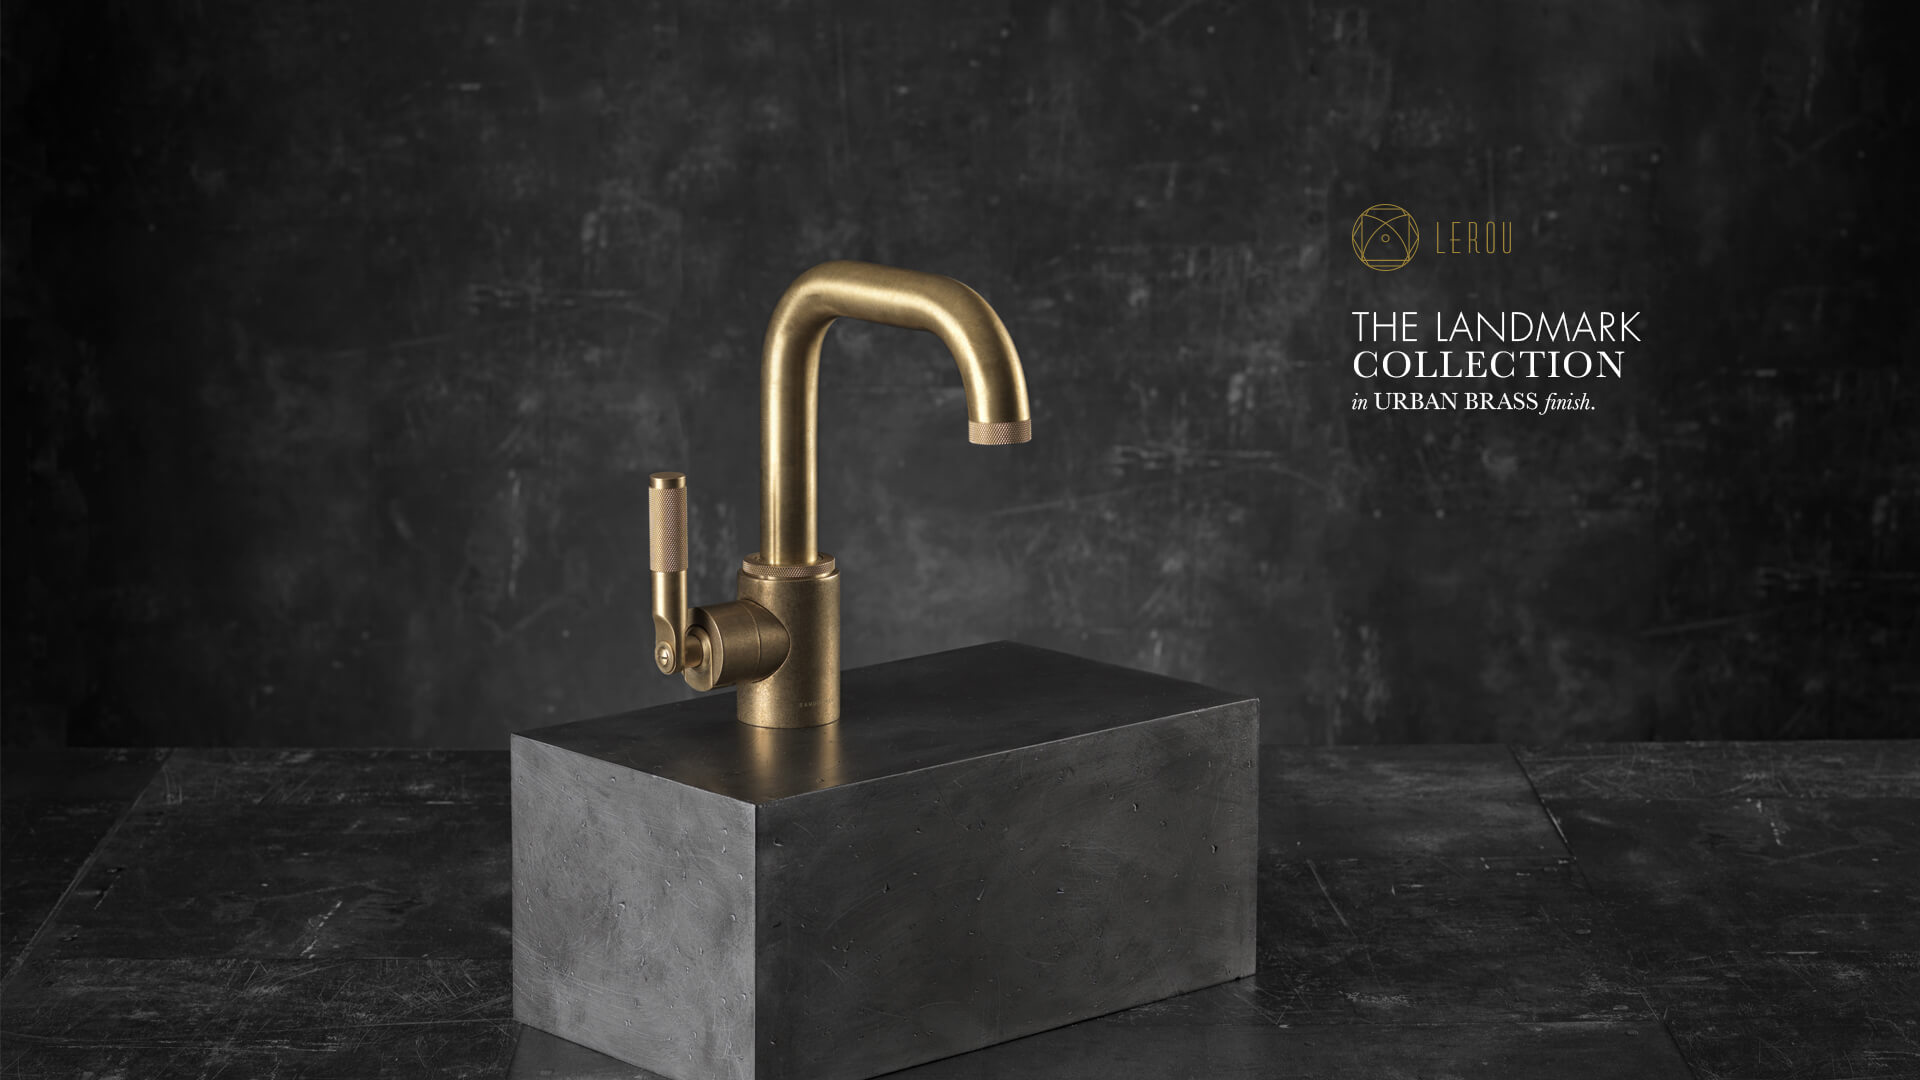 Lerou Landmark Collection: Contemporary, Bold and Urban Style.